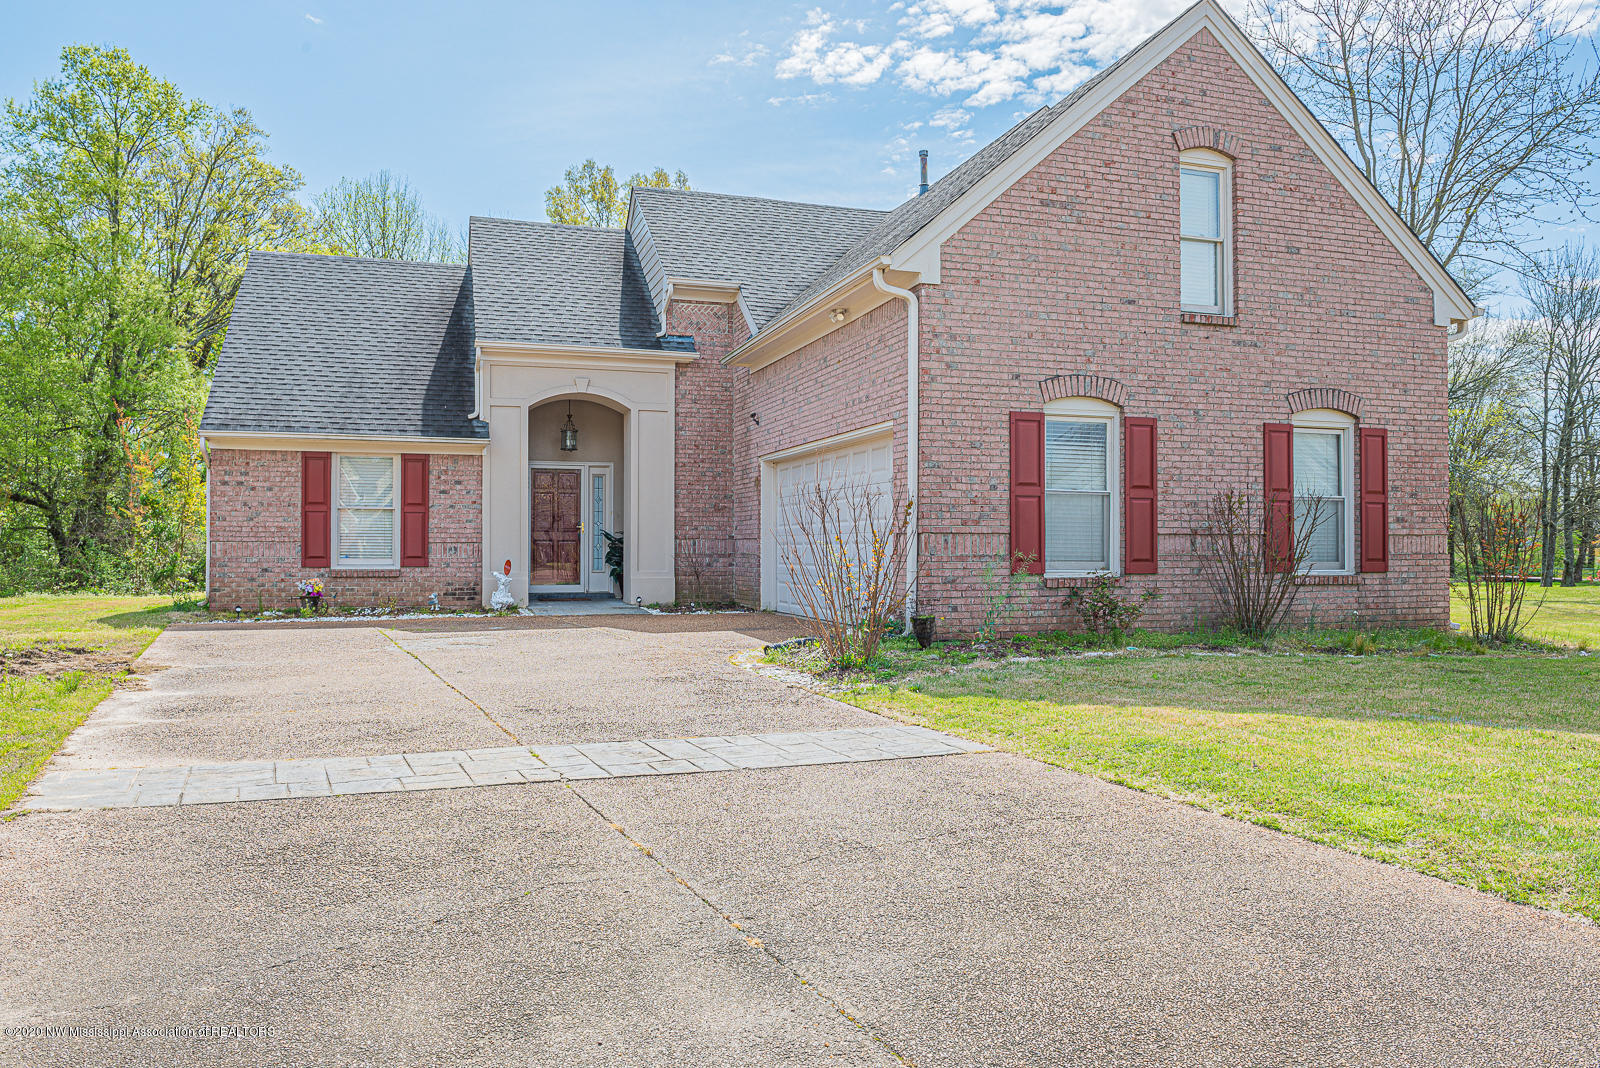 8225 Waverly Cove, Olive Branch in DeSoto County, MS 38654 Home for Sale